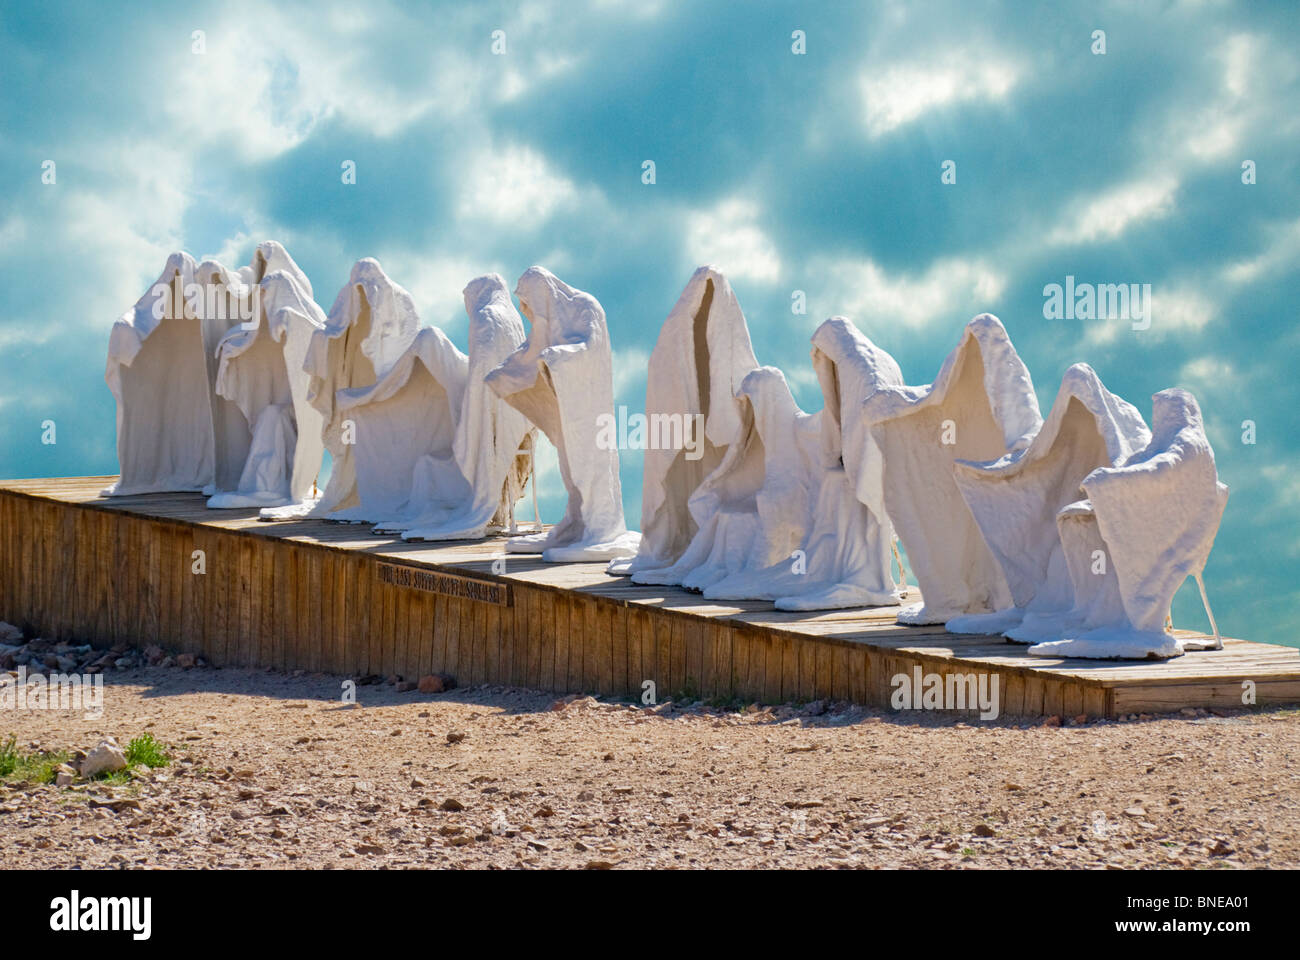 Sculptures representing 'The Last Supper' in a museum, Goldwell Open Air Museum, Rhyolite Ghost Town, Nevada, - Stock Image